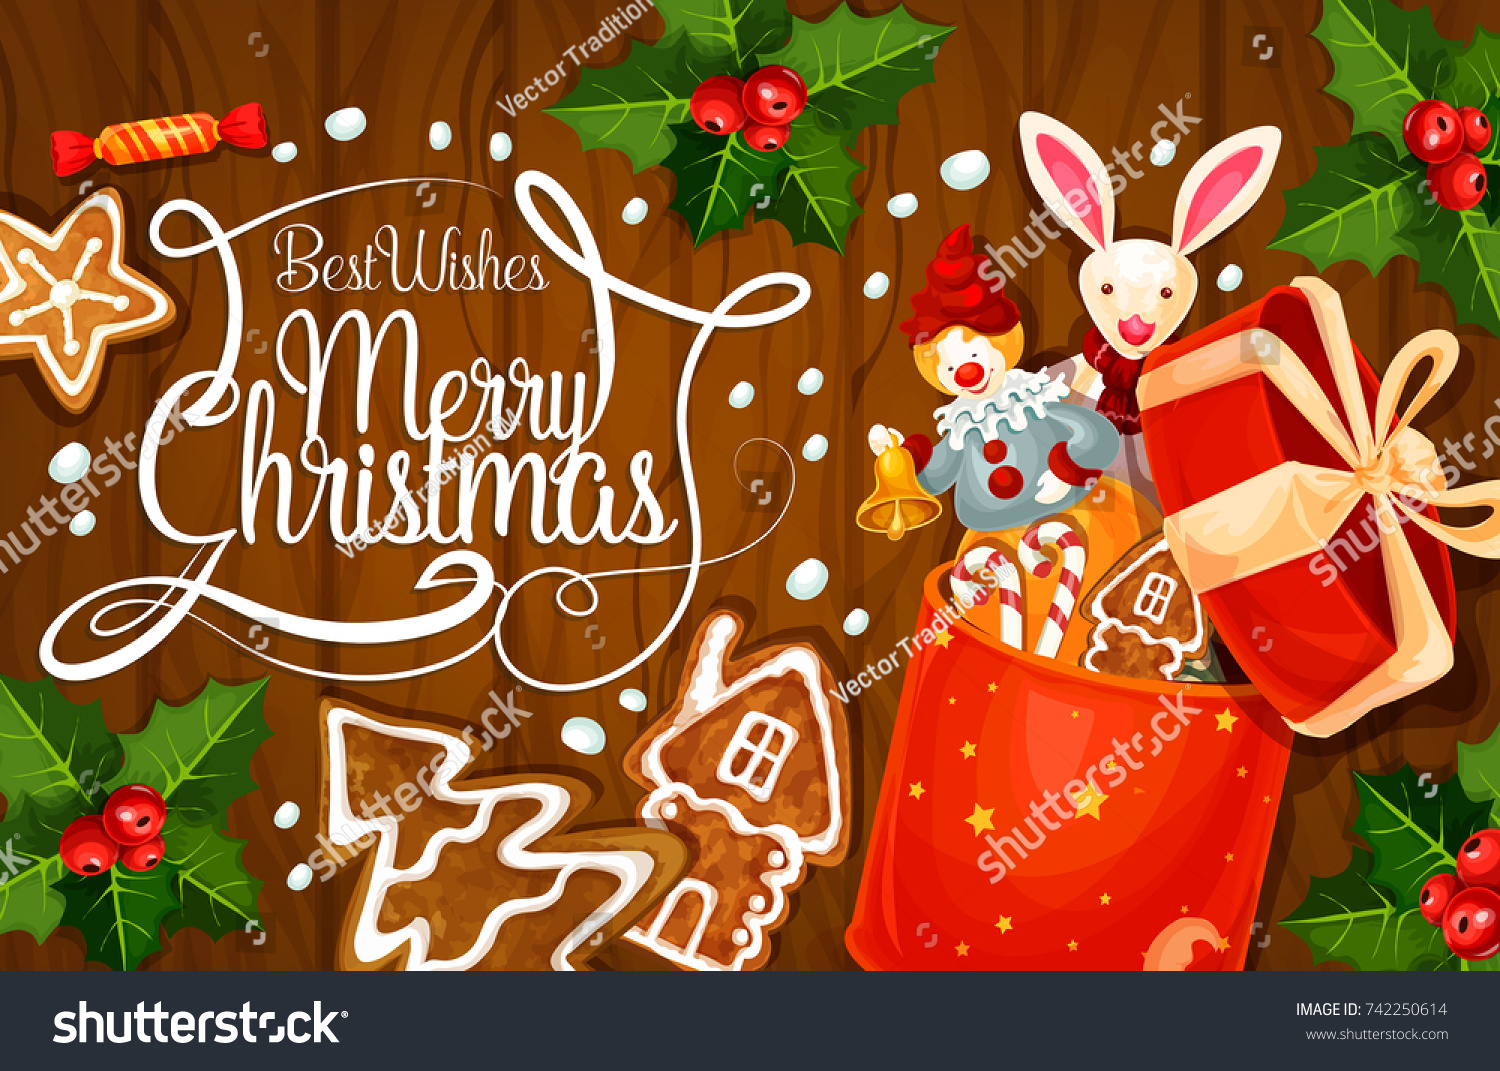 Merry christmas greeting card design happy stock vector 742250614 merry christmas greeting card design for happy holidays or happy new year winter season wish kristyandbryce Image collections